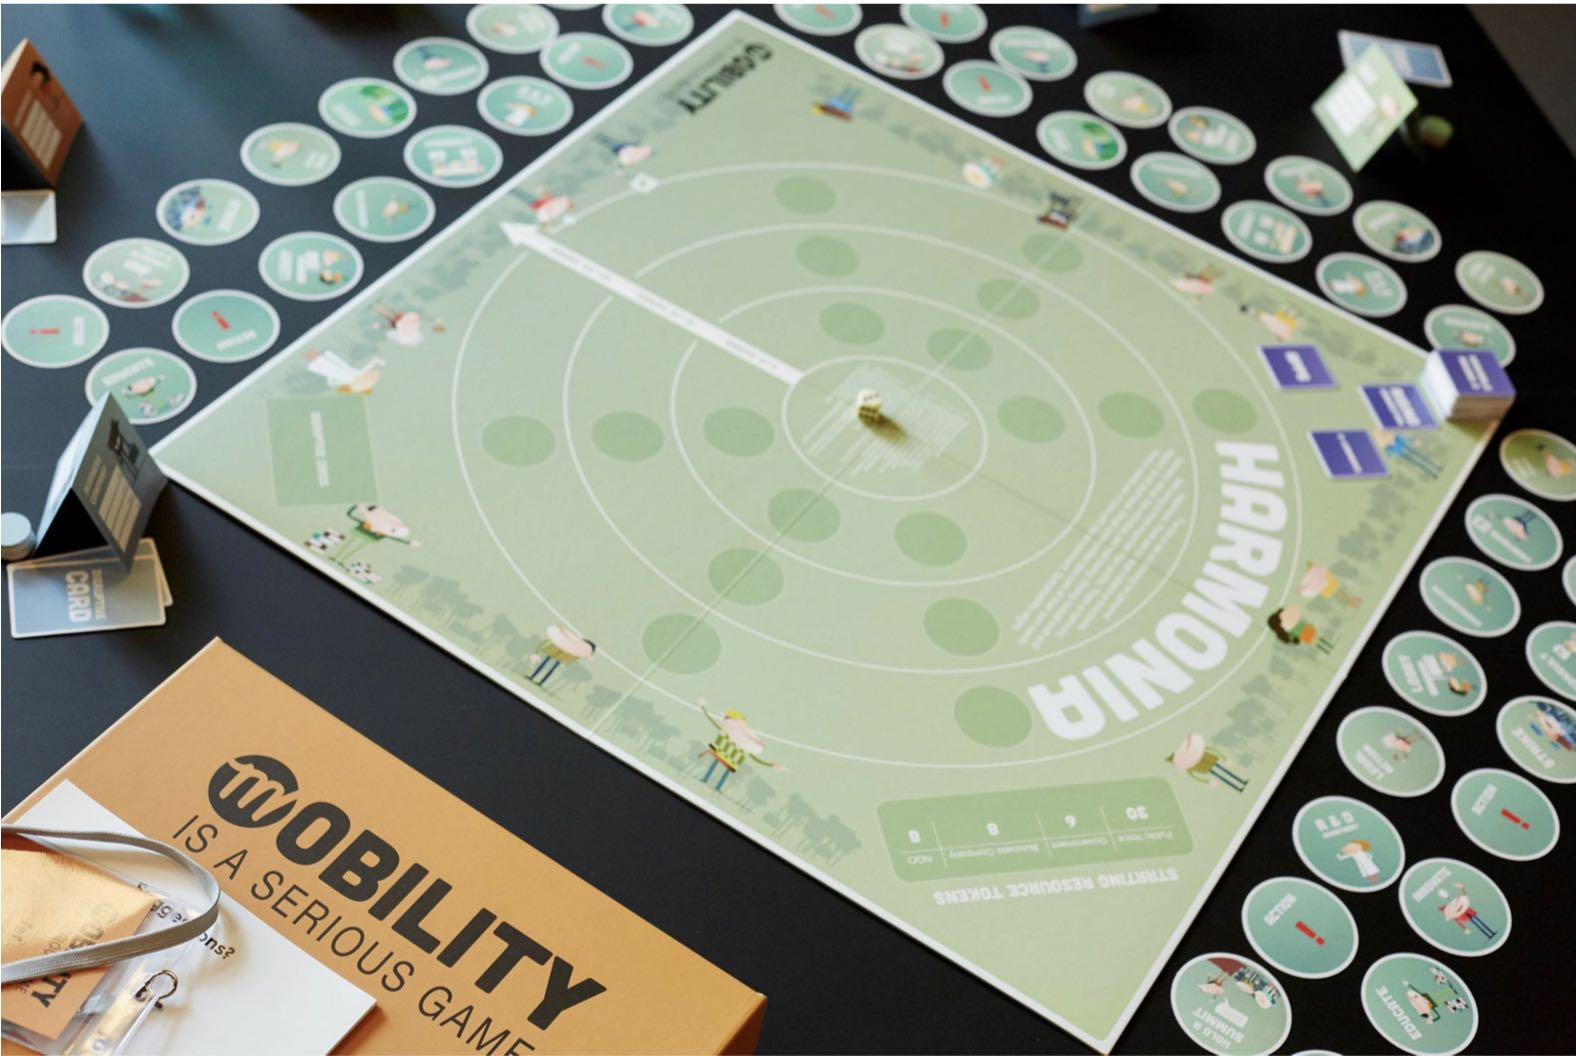 Mobility is a Serious Game board game